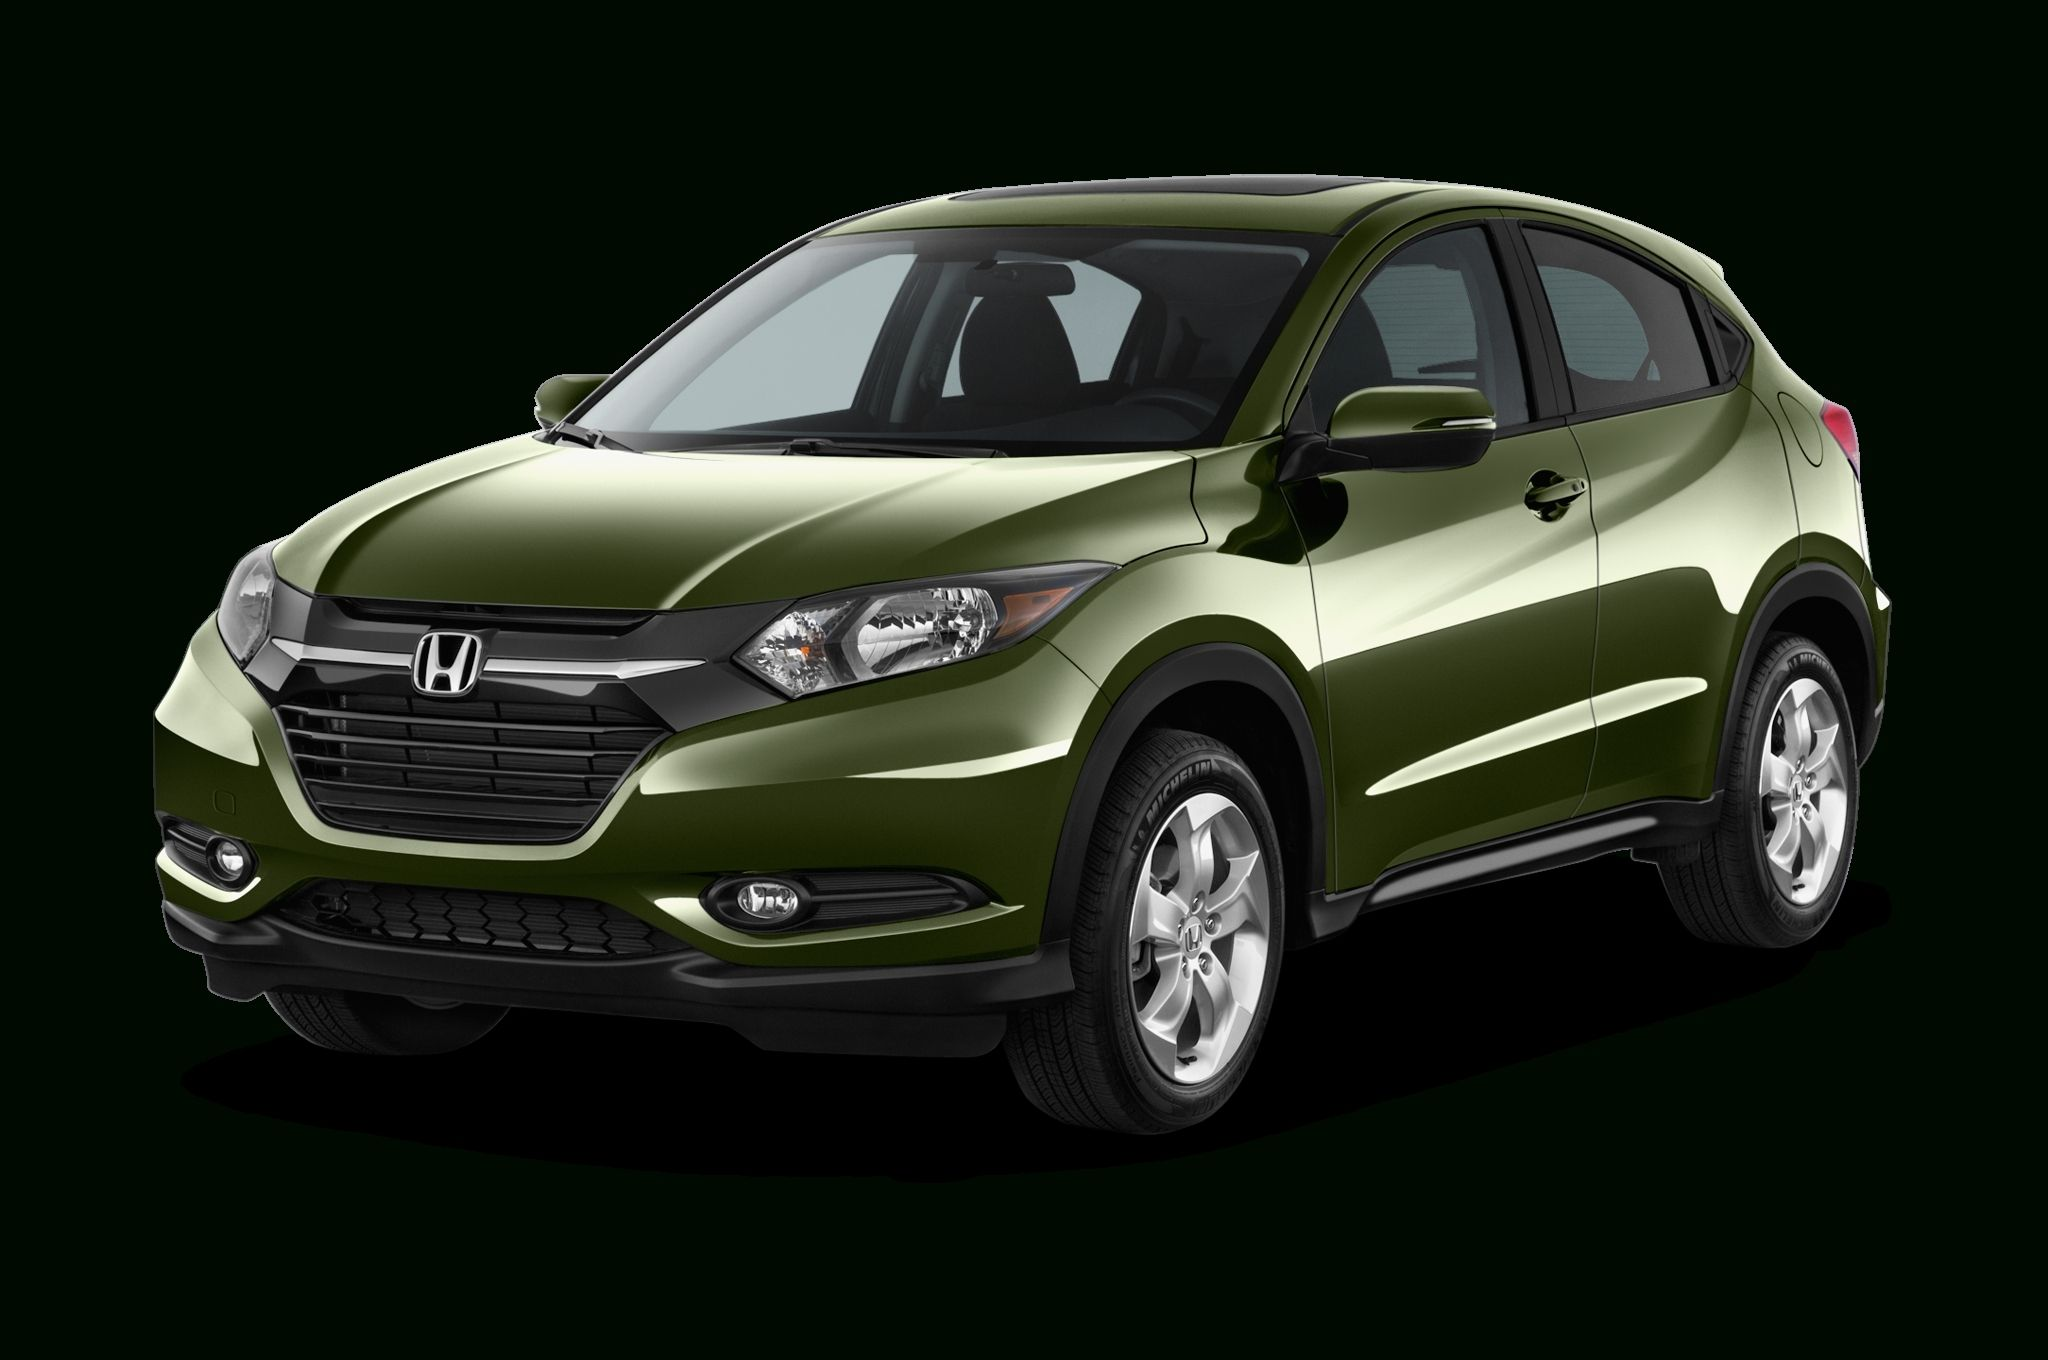 2019 Honda Hrv Towing Capacity Price (With images) Honda